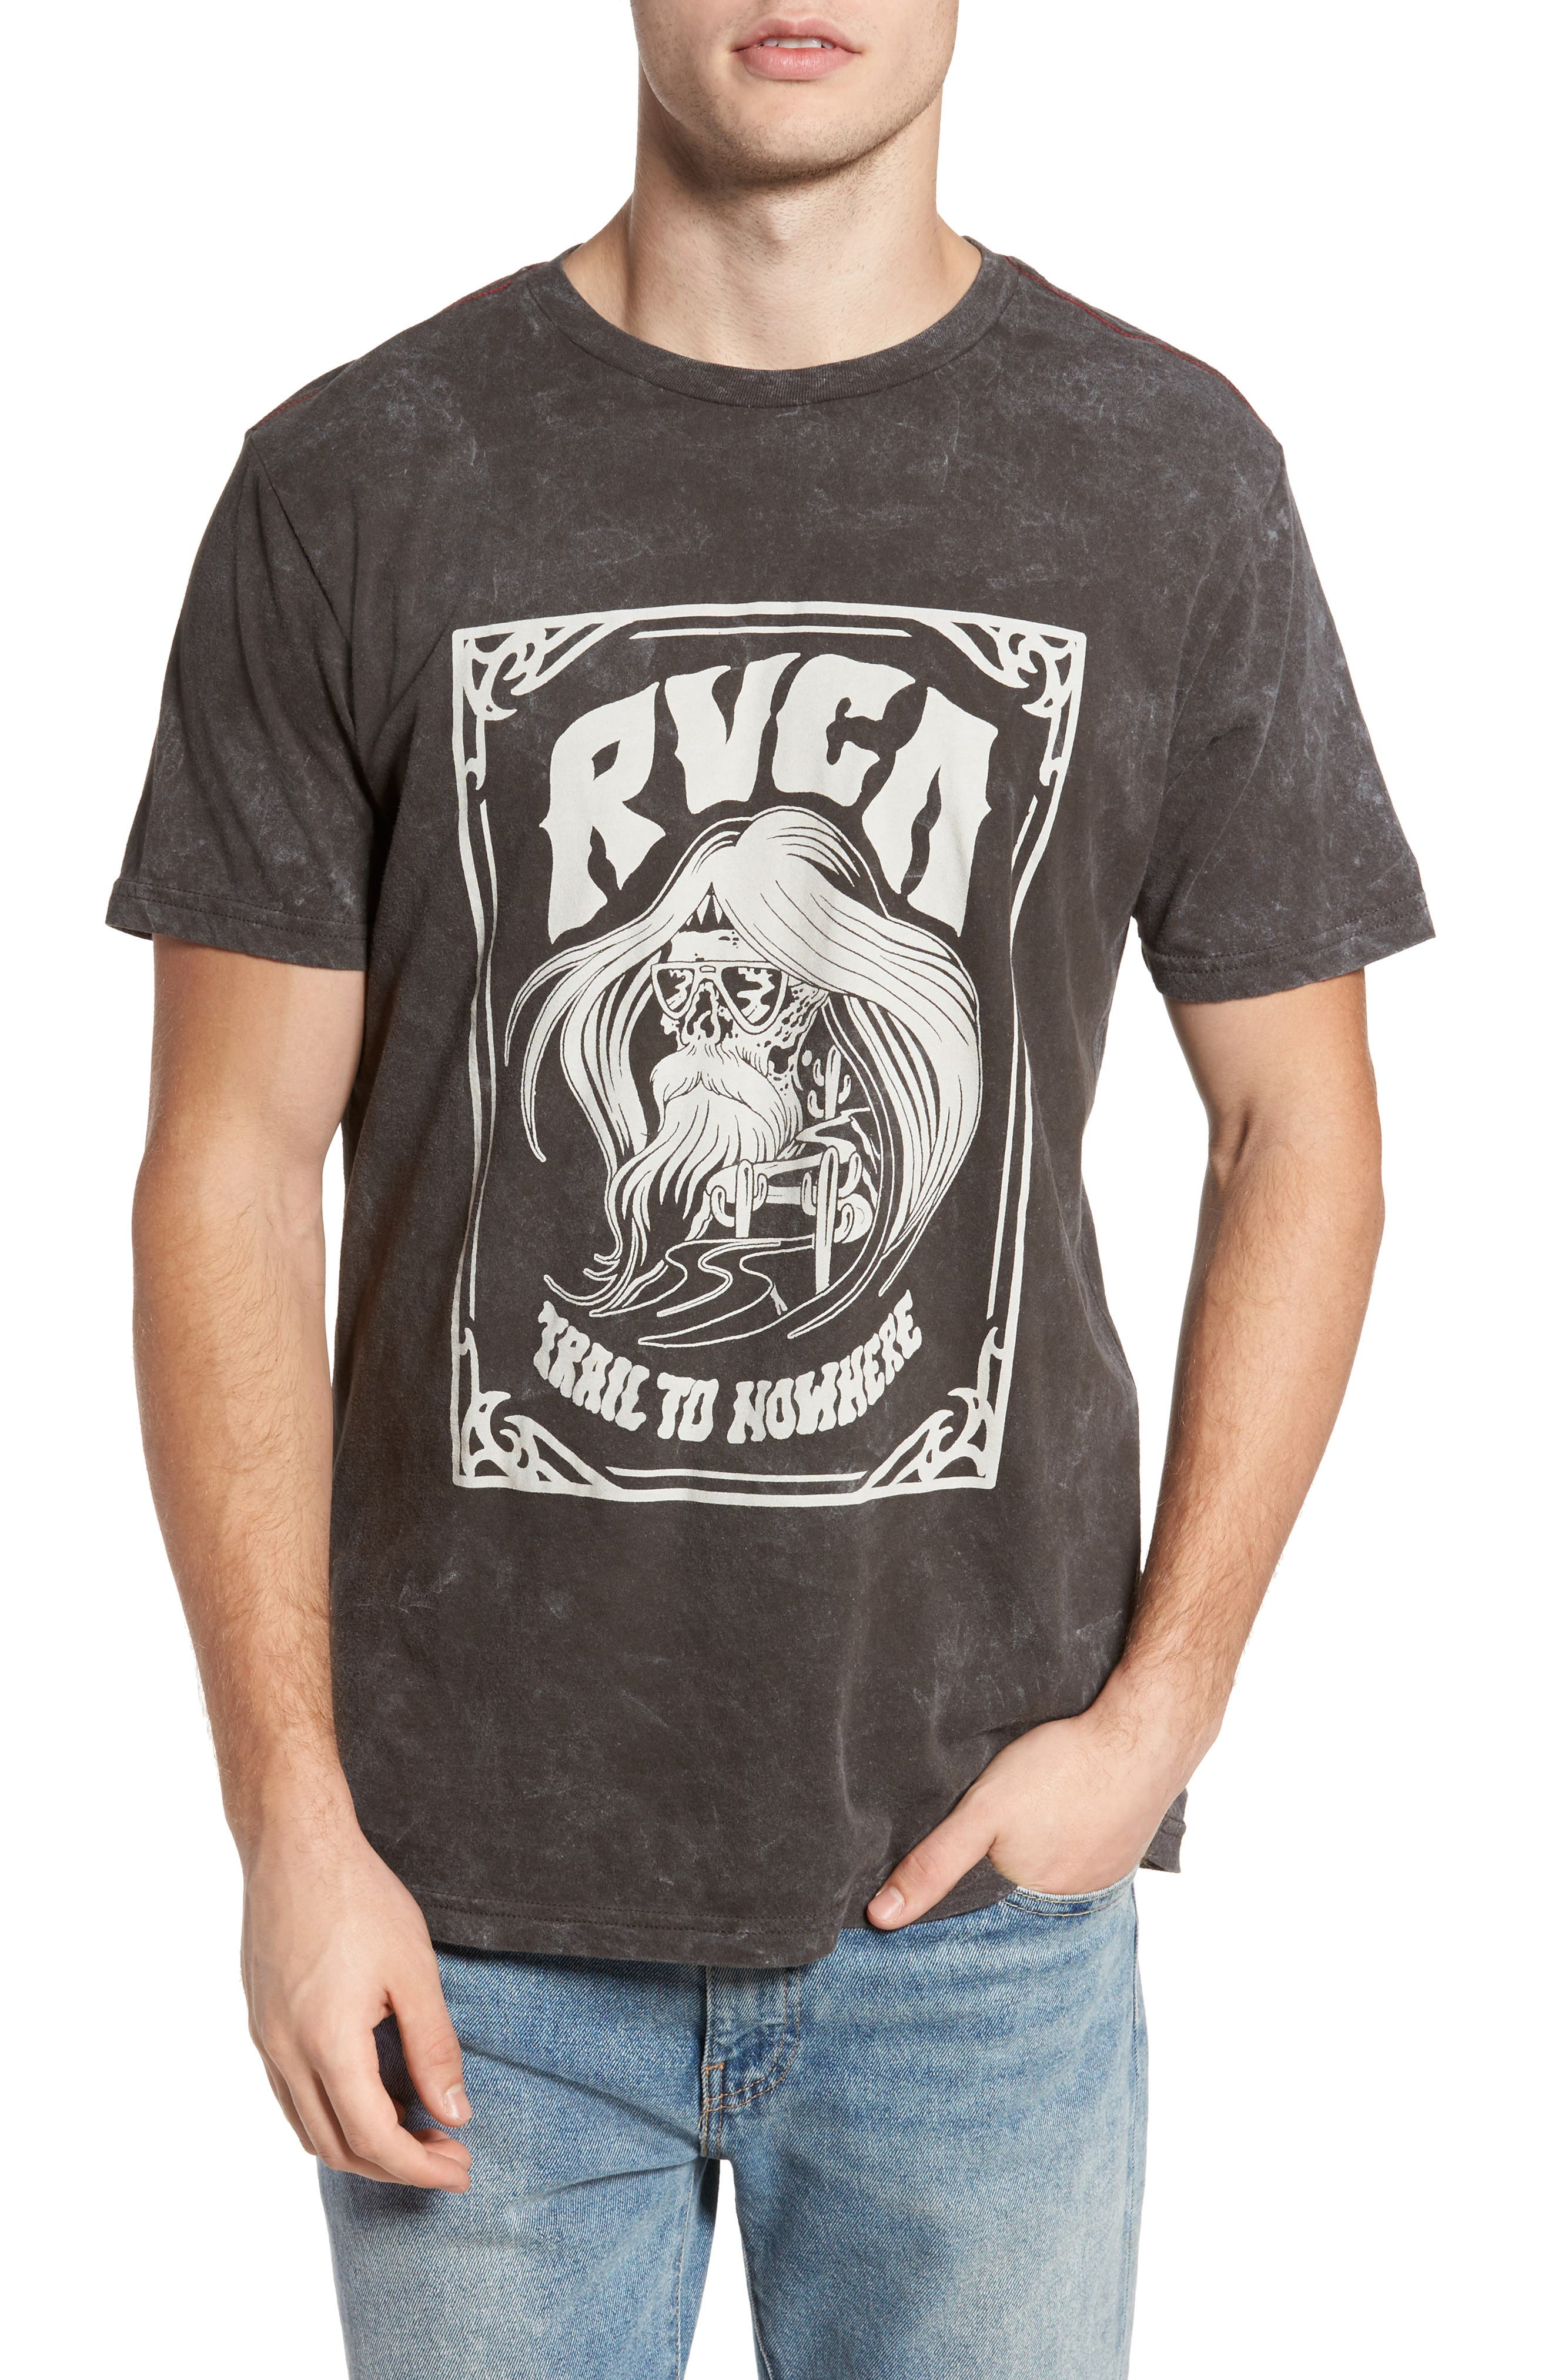 Trail to Nowhere Graphic T-Shirt,                             Main thumbnail 1, color,                             008